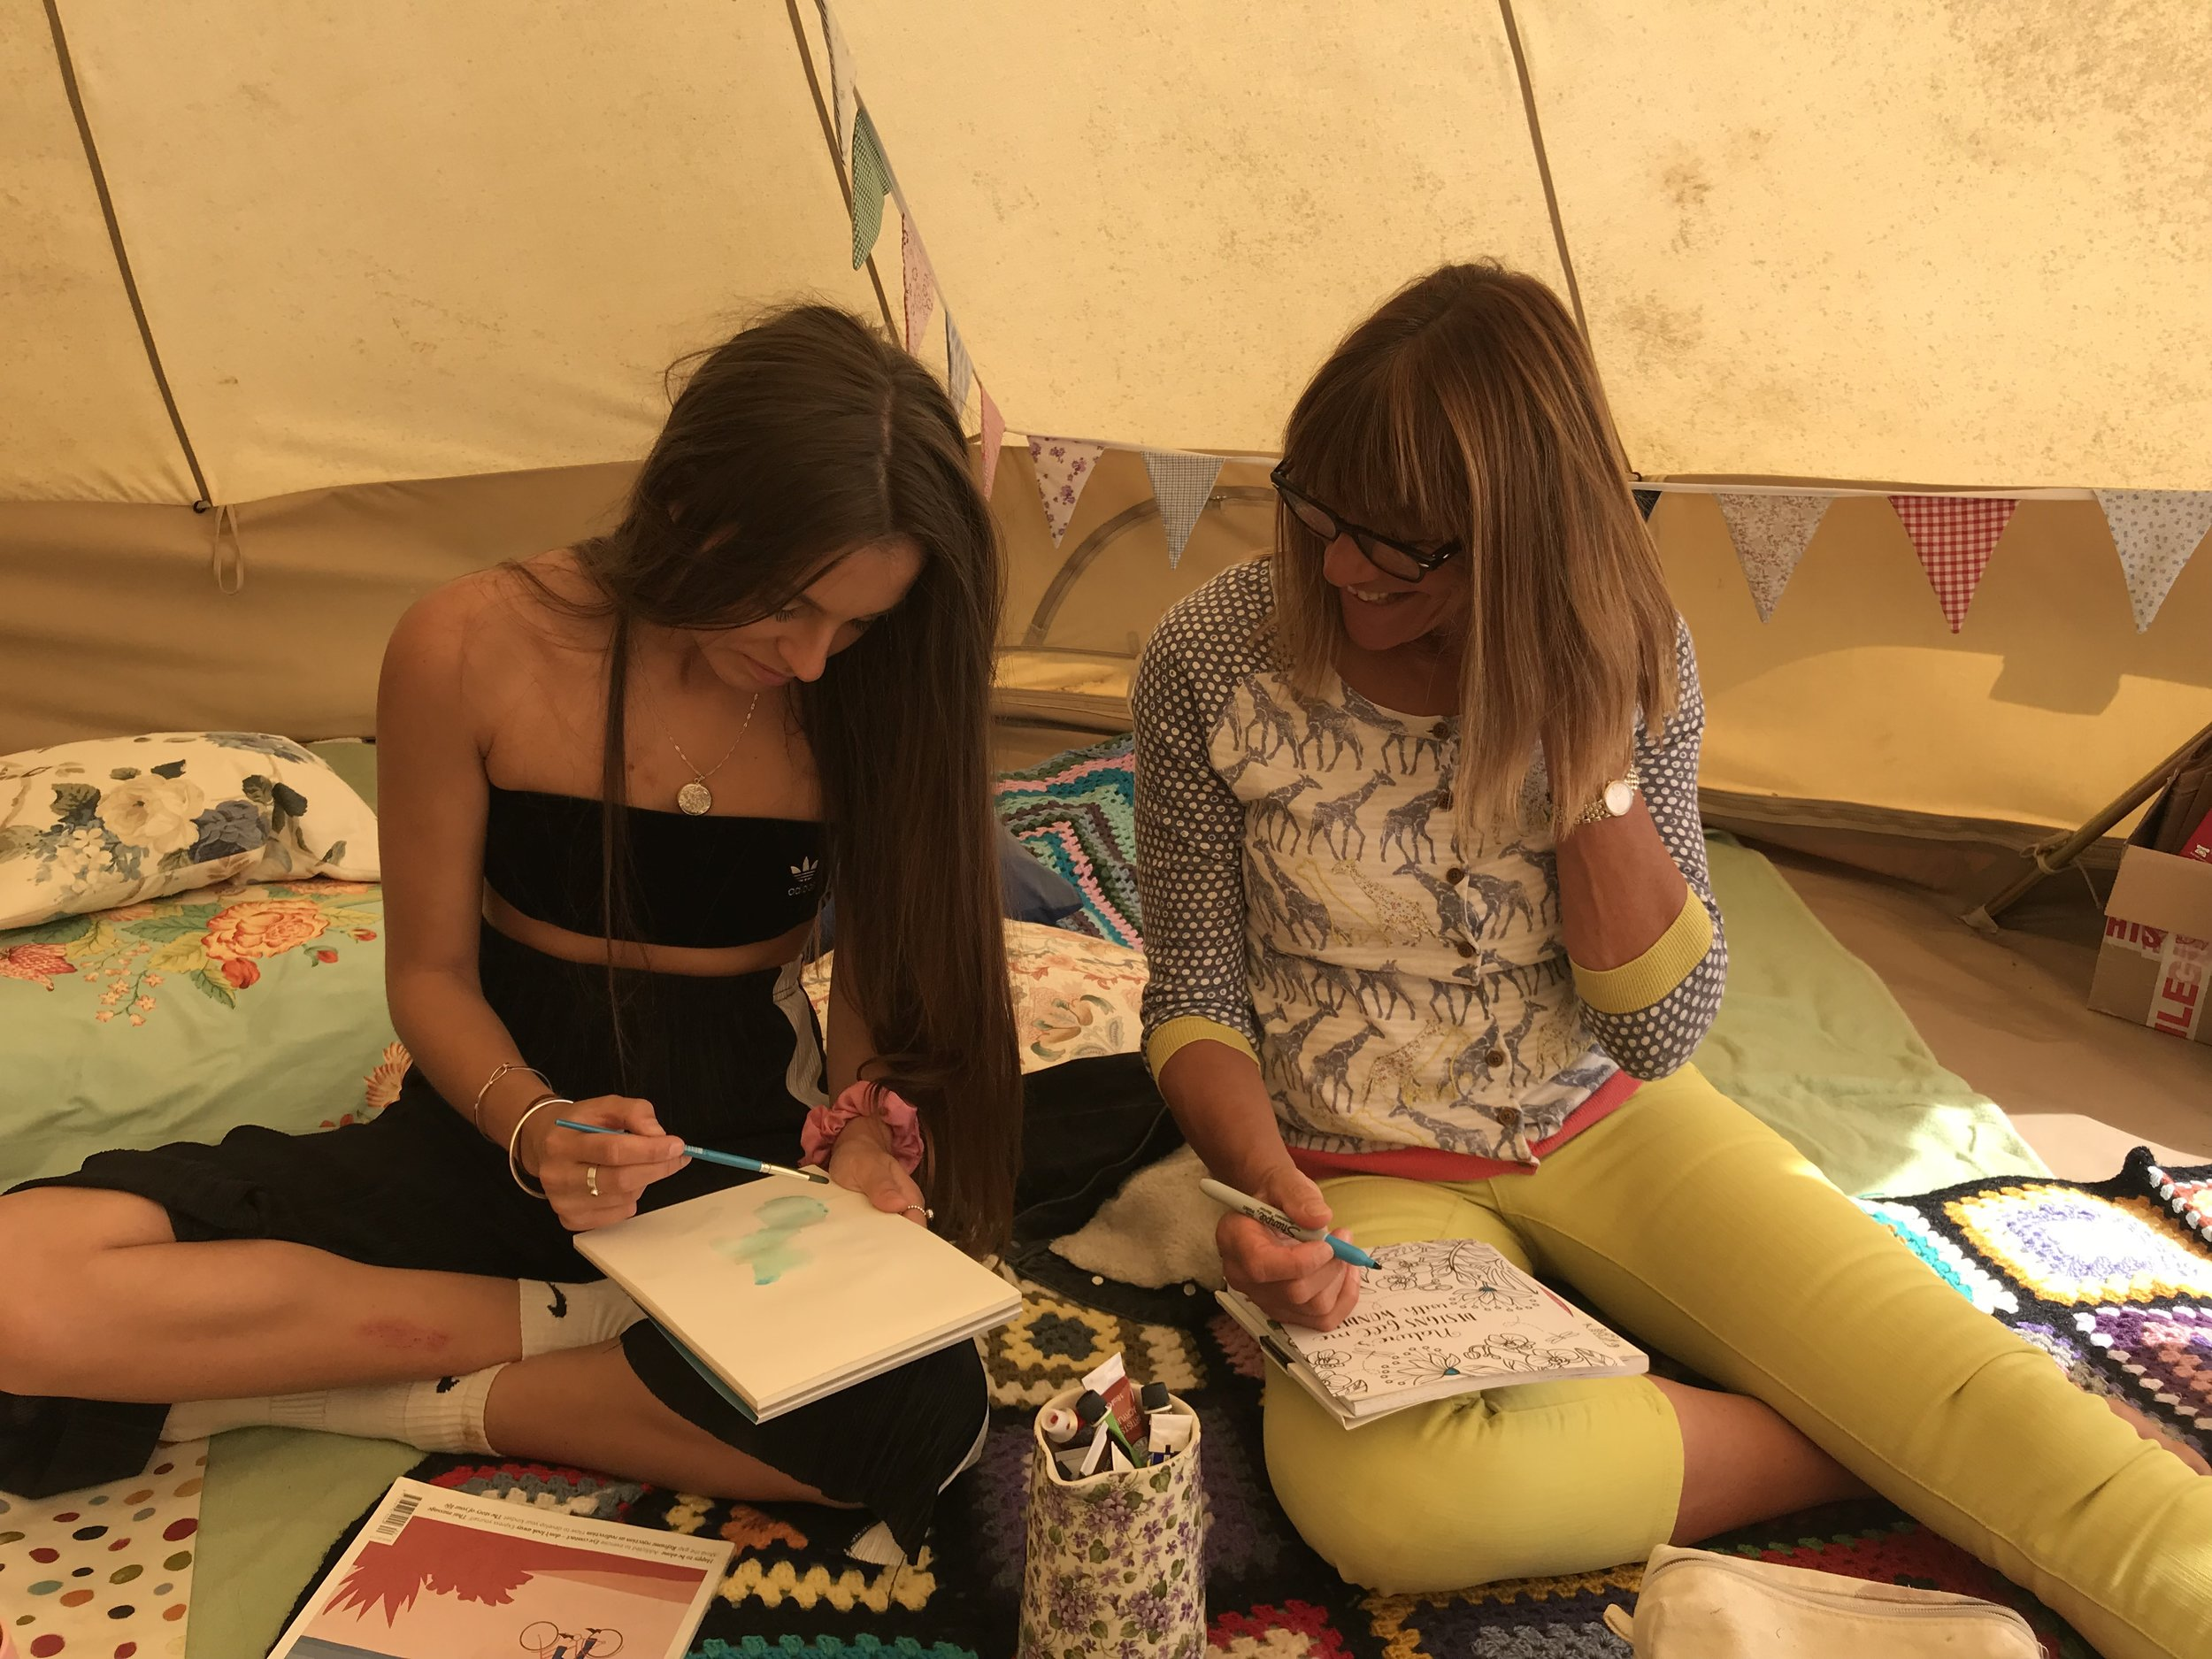 Mother and daughter enjoying some artistic relaxation together in the Well Tent.